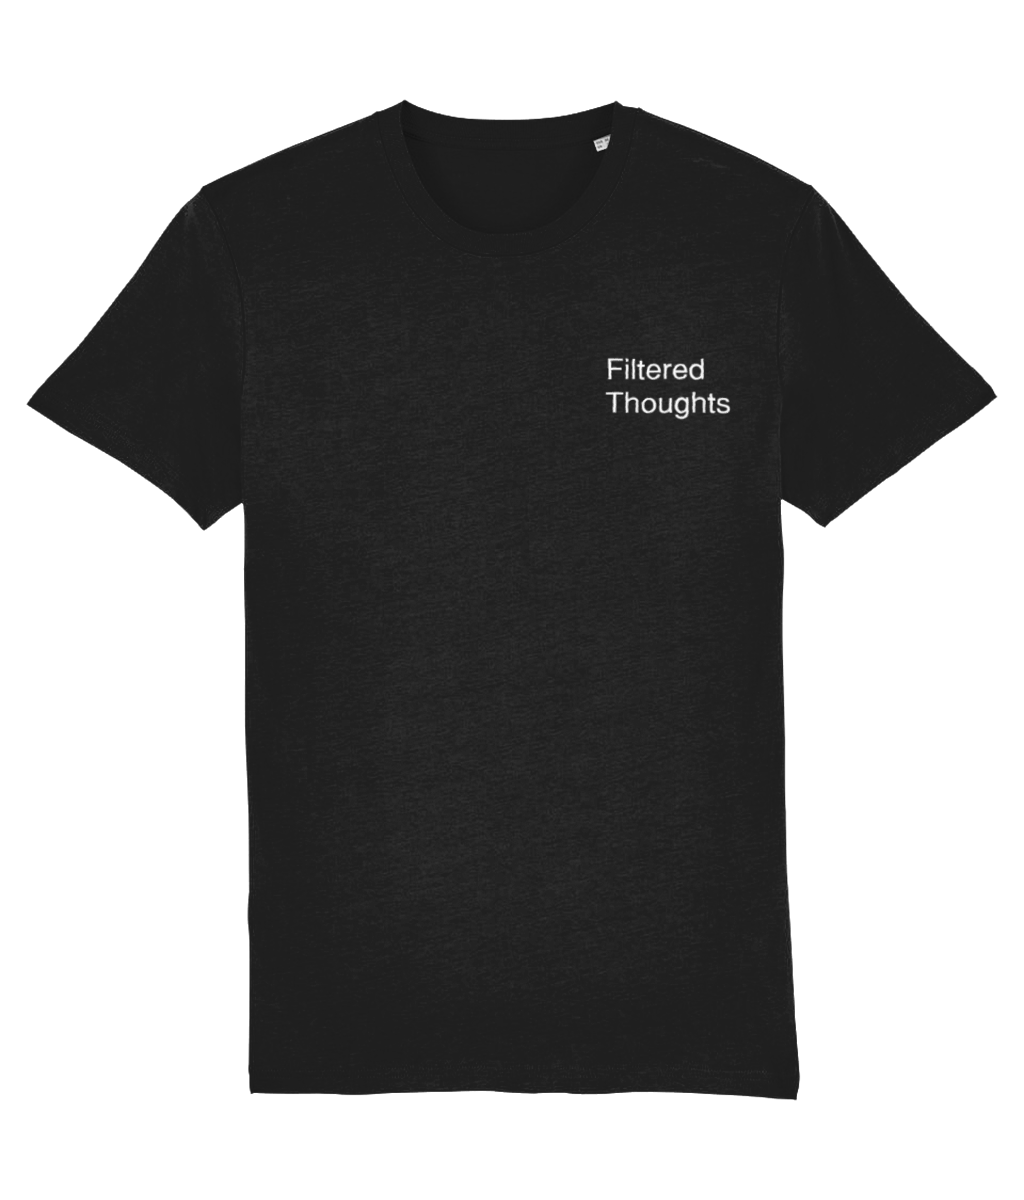 Filtered Thoughts T-shirt - Mens